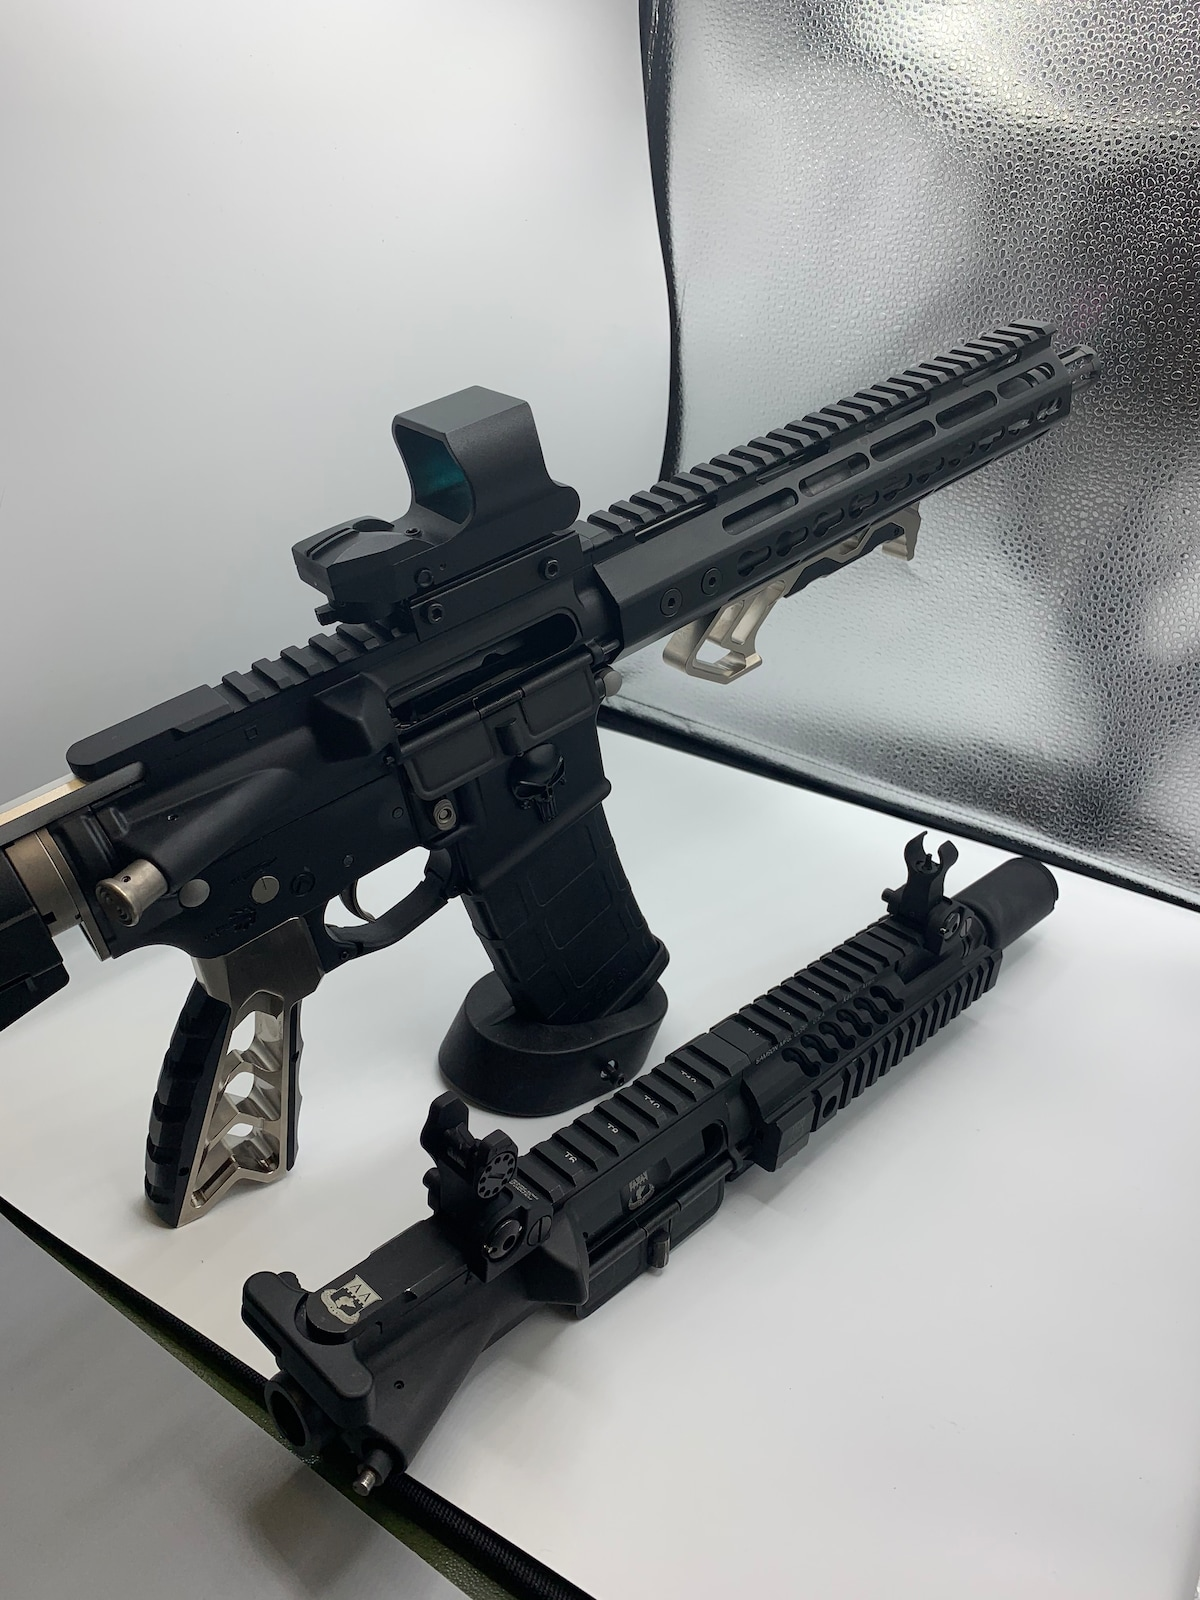 SPIKE'S TACTICAL ST-15 SPARTAN